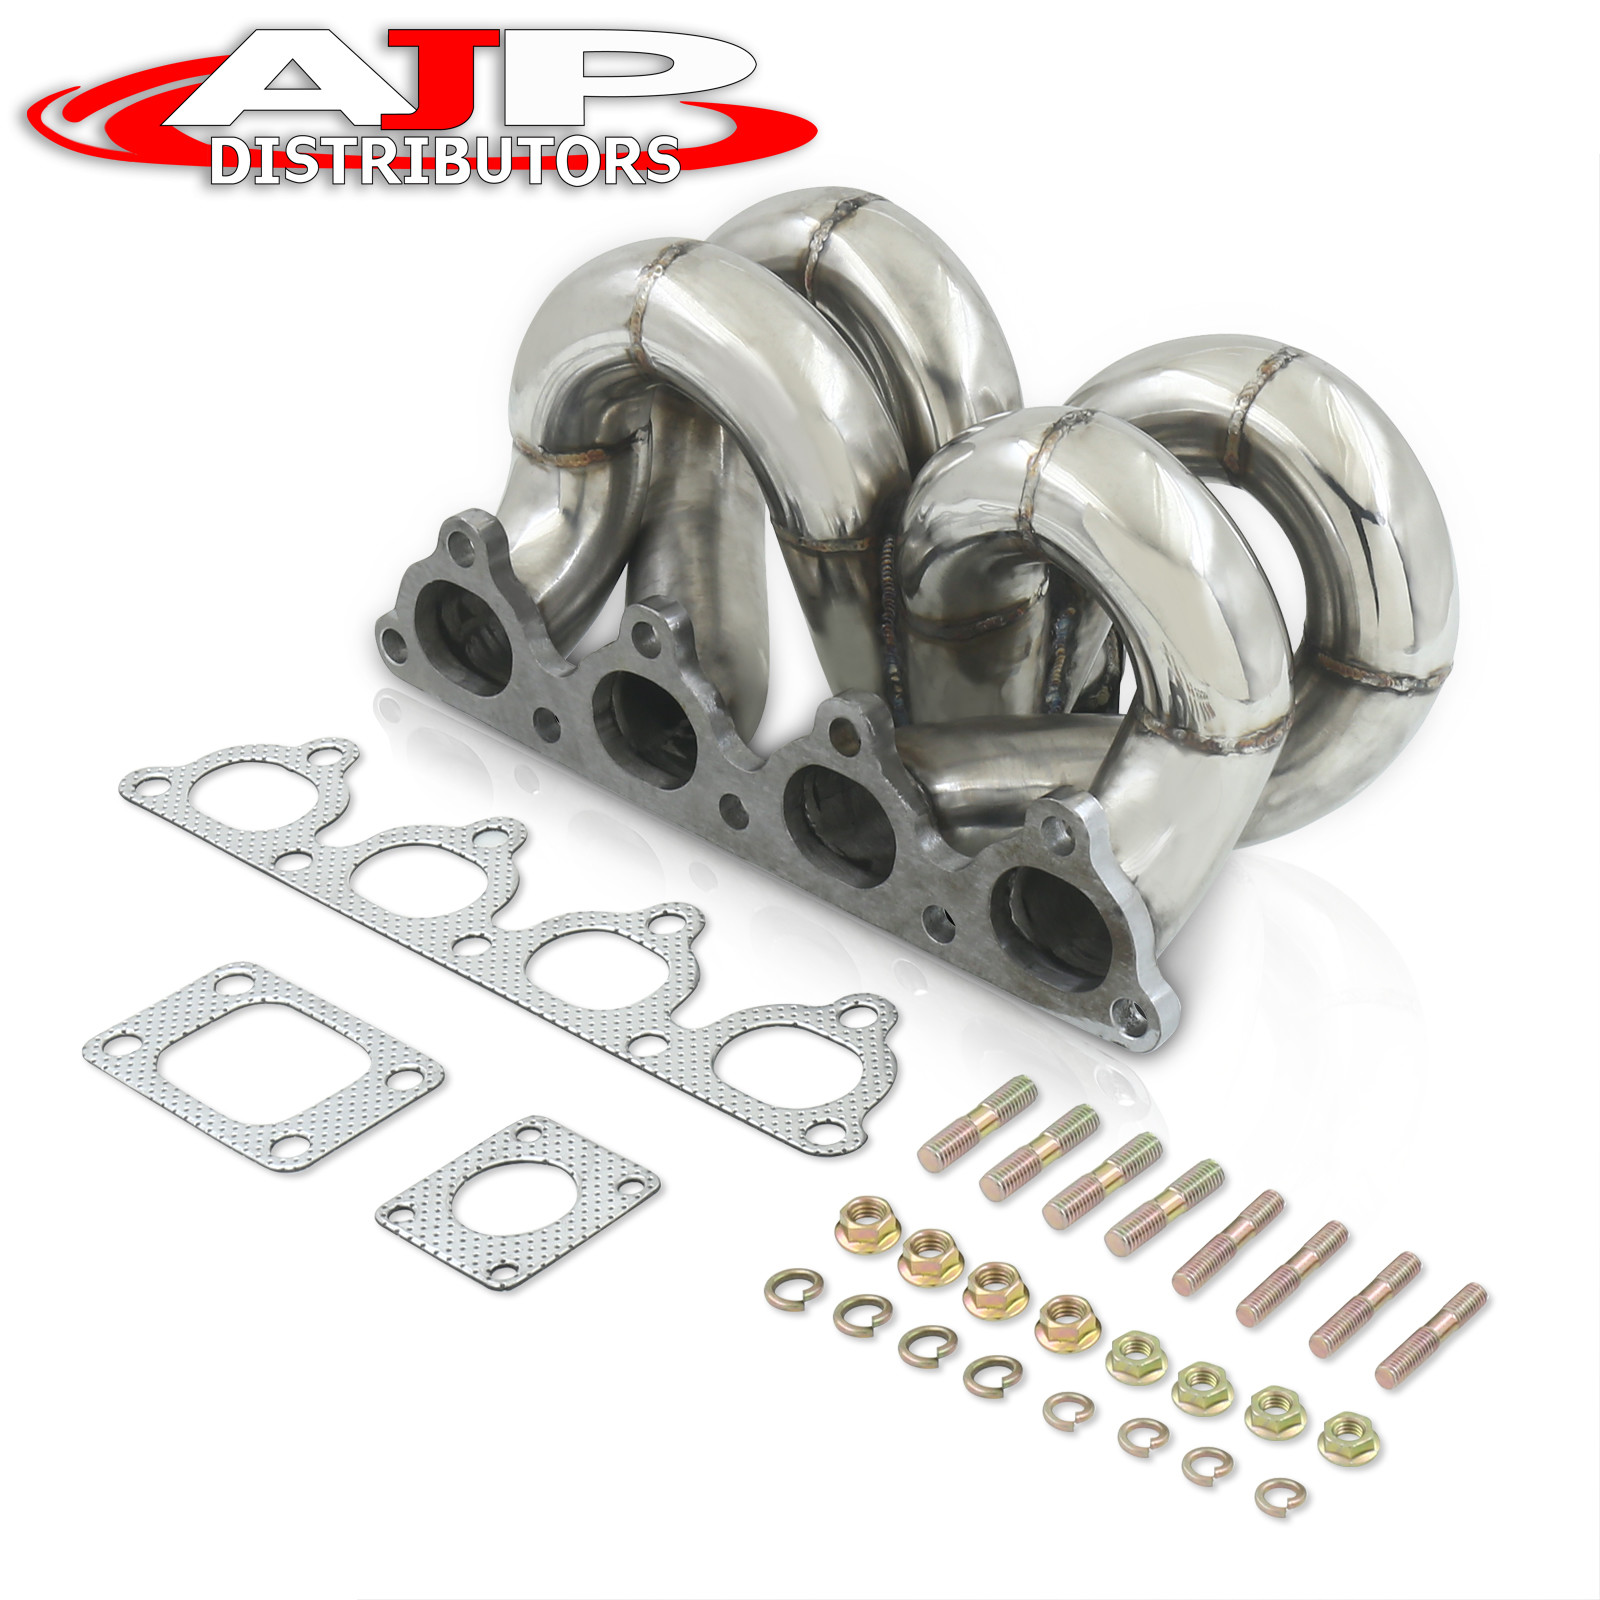 Honda D-series Civic T3 Stainless Turbo Manifold Header SS D SERIES POLISHED